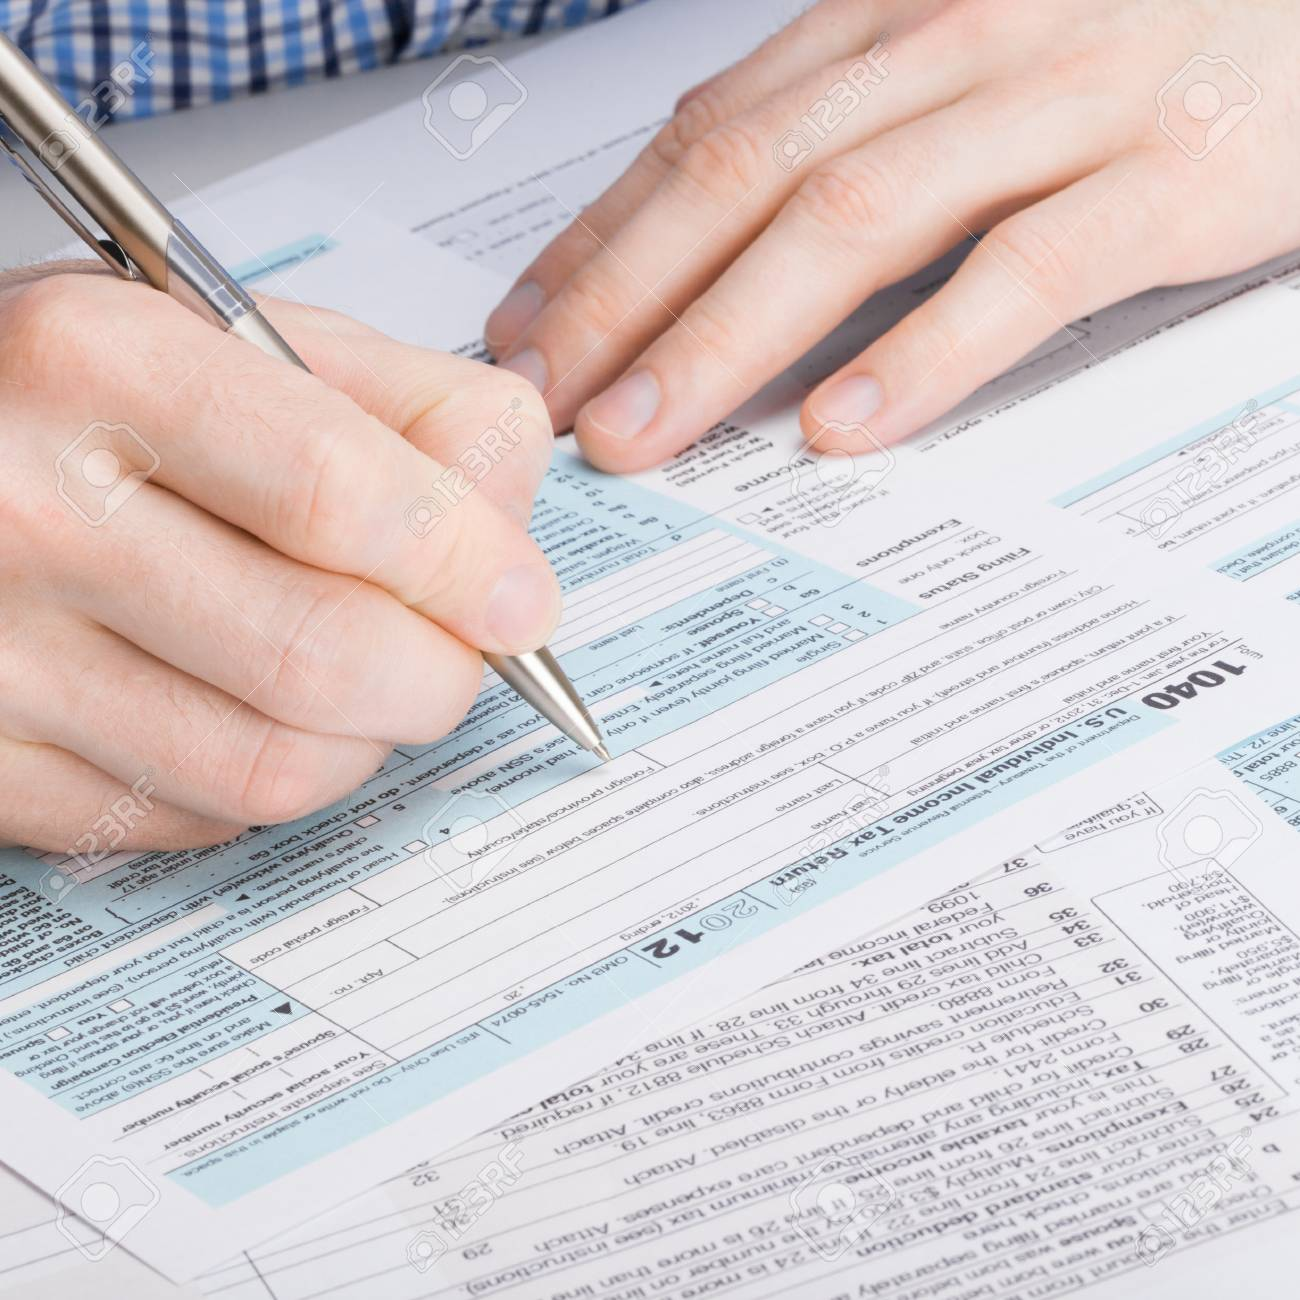 USA 1040 Tax Form Stock Photo, Picture And Royalty Free Image. Image ...